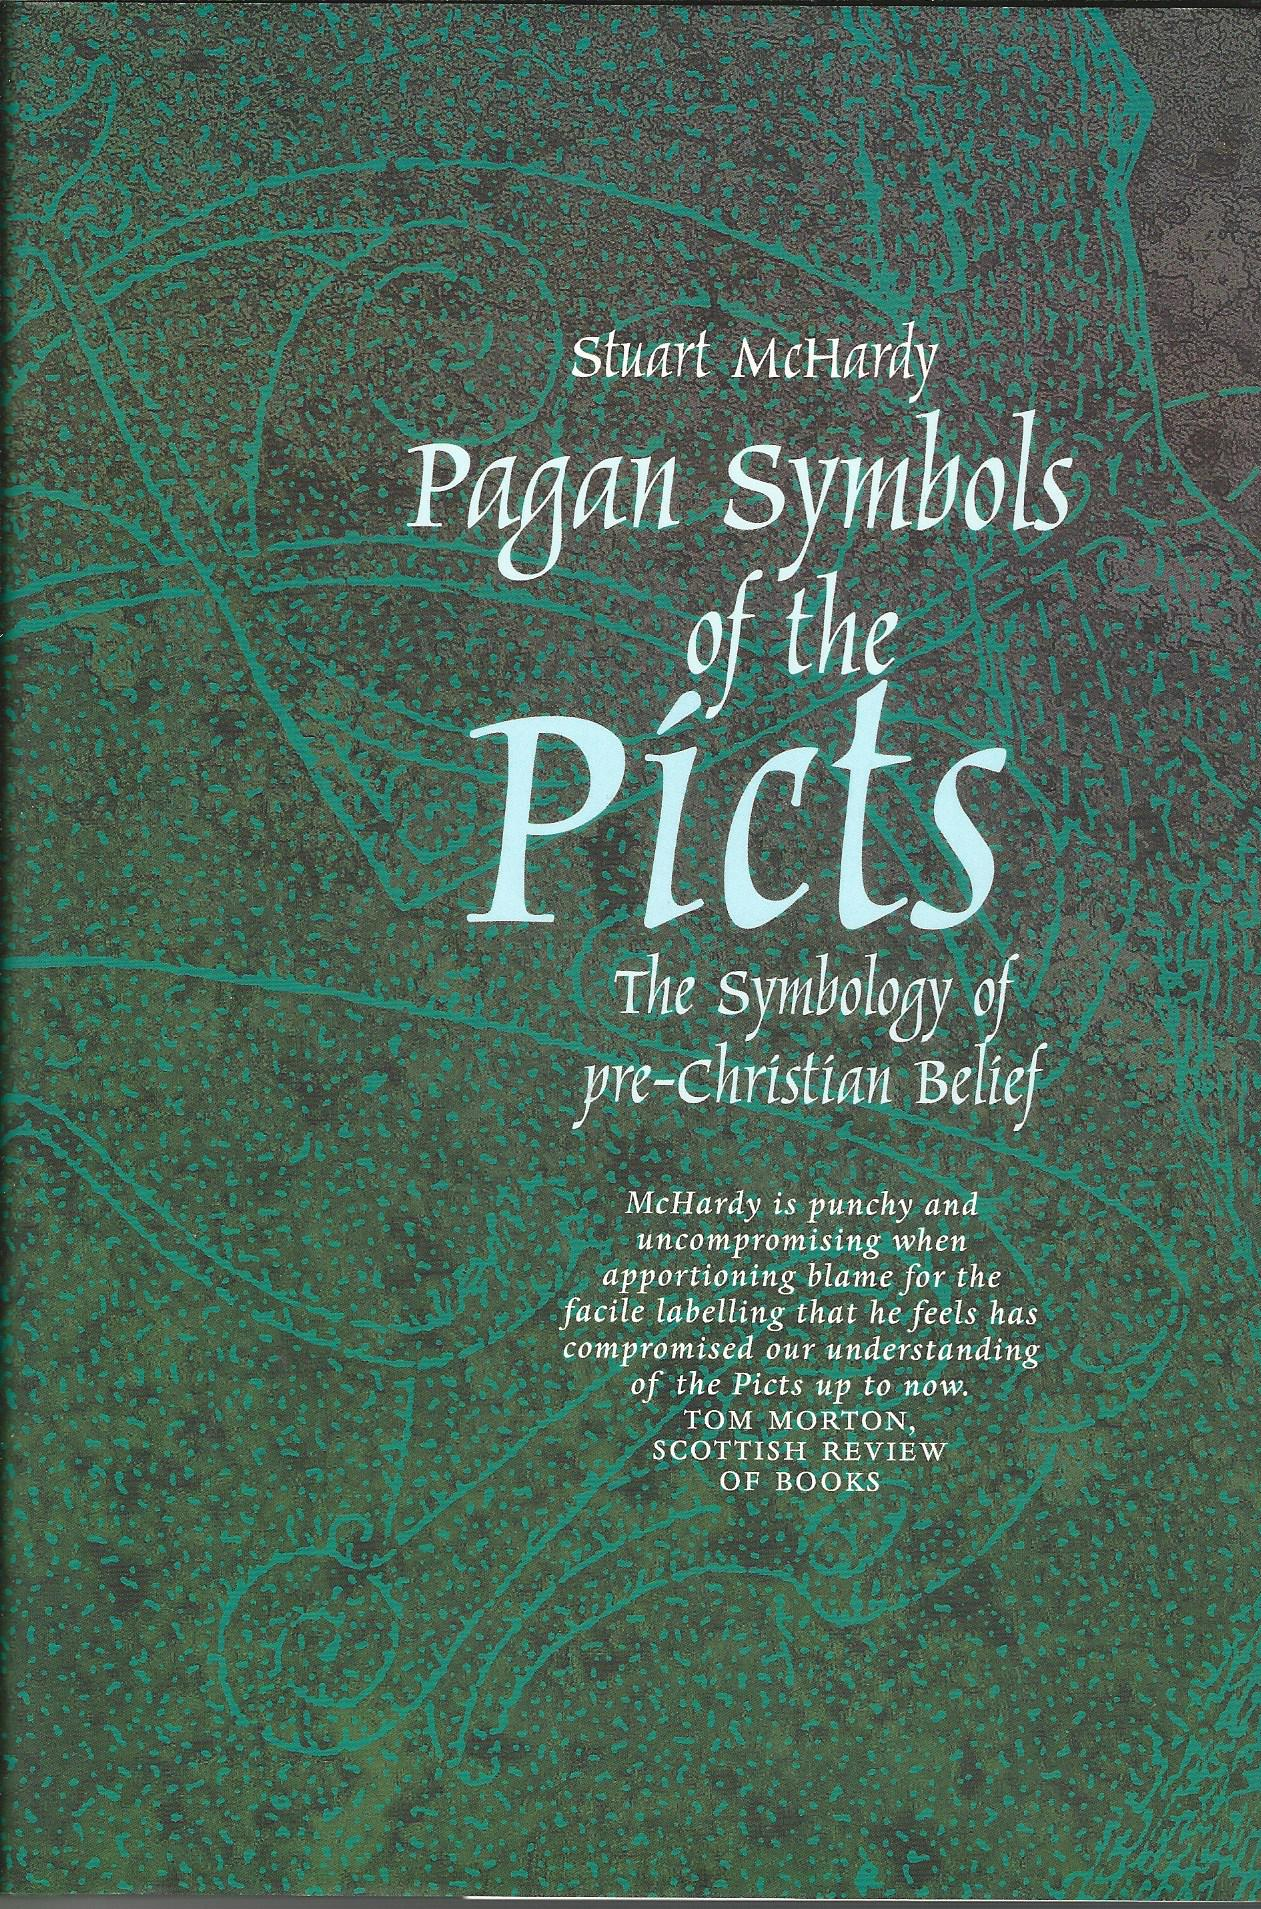 Image for Pagan Symbols of the Picts: The Symbology of pre-Christian Belief.